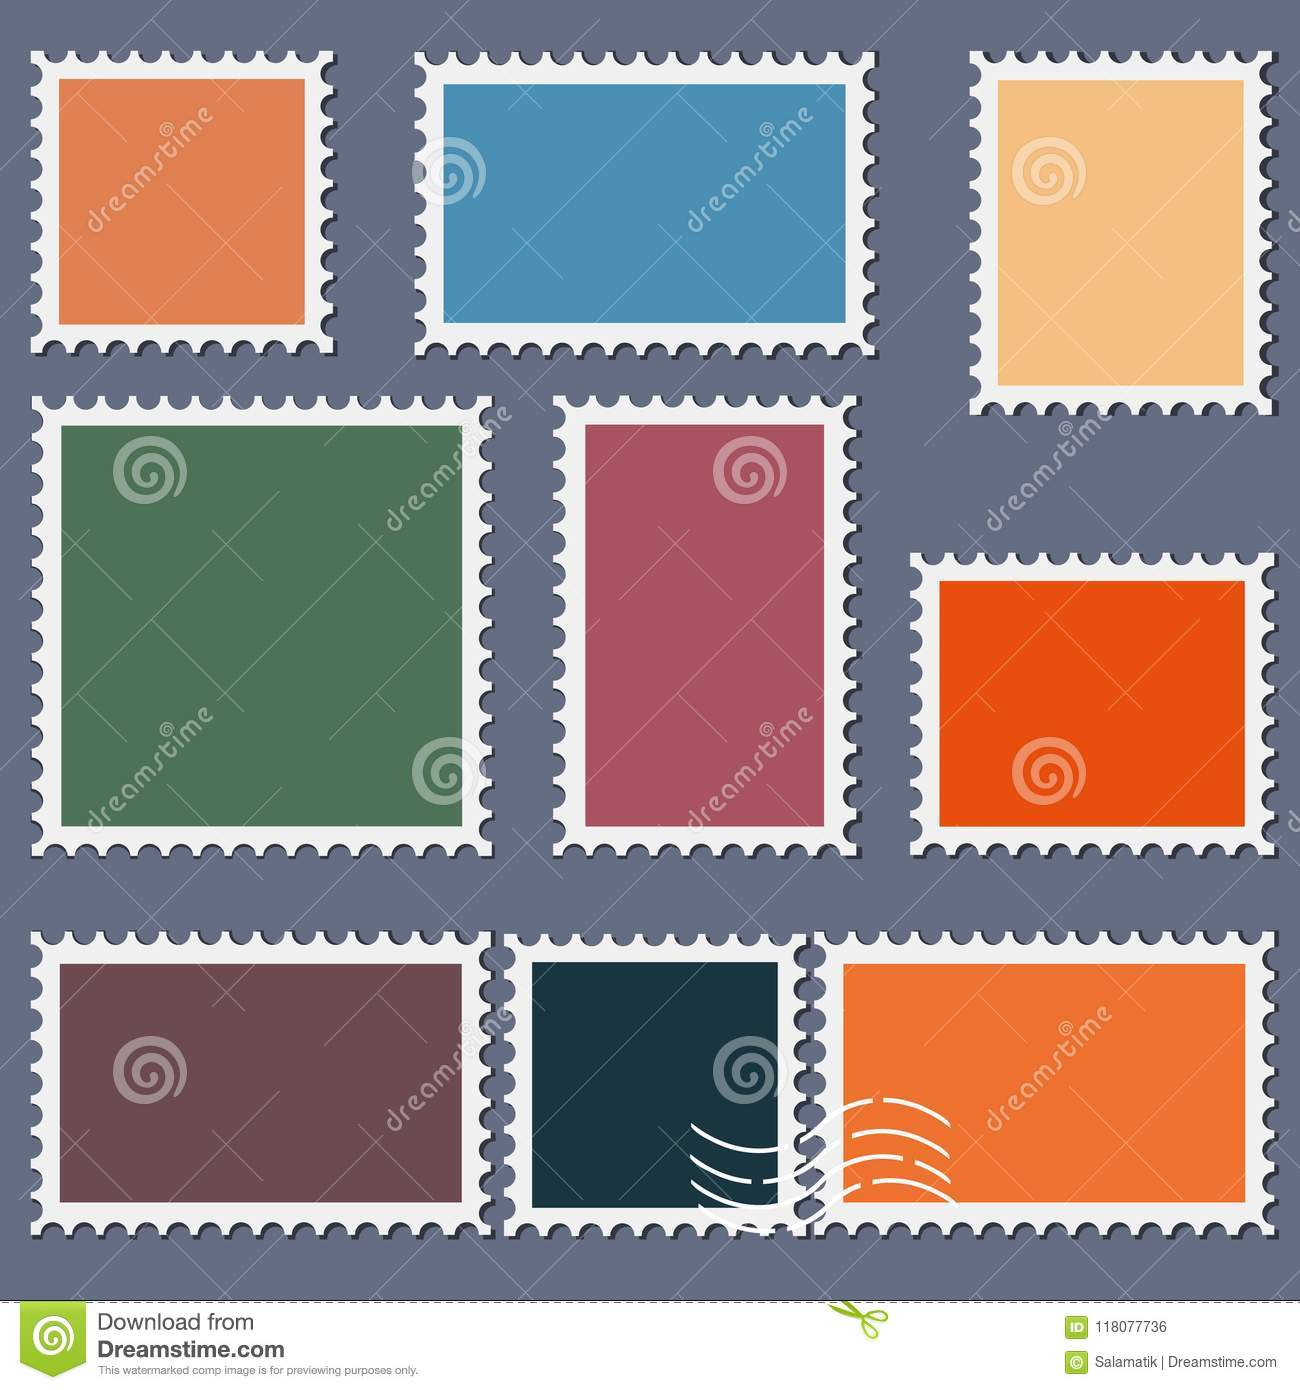 blank postage stamps template set on dark background rectangle and